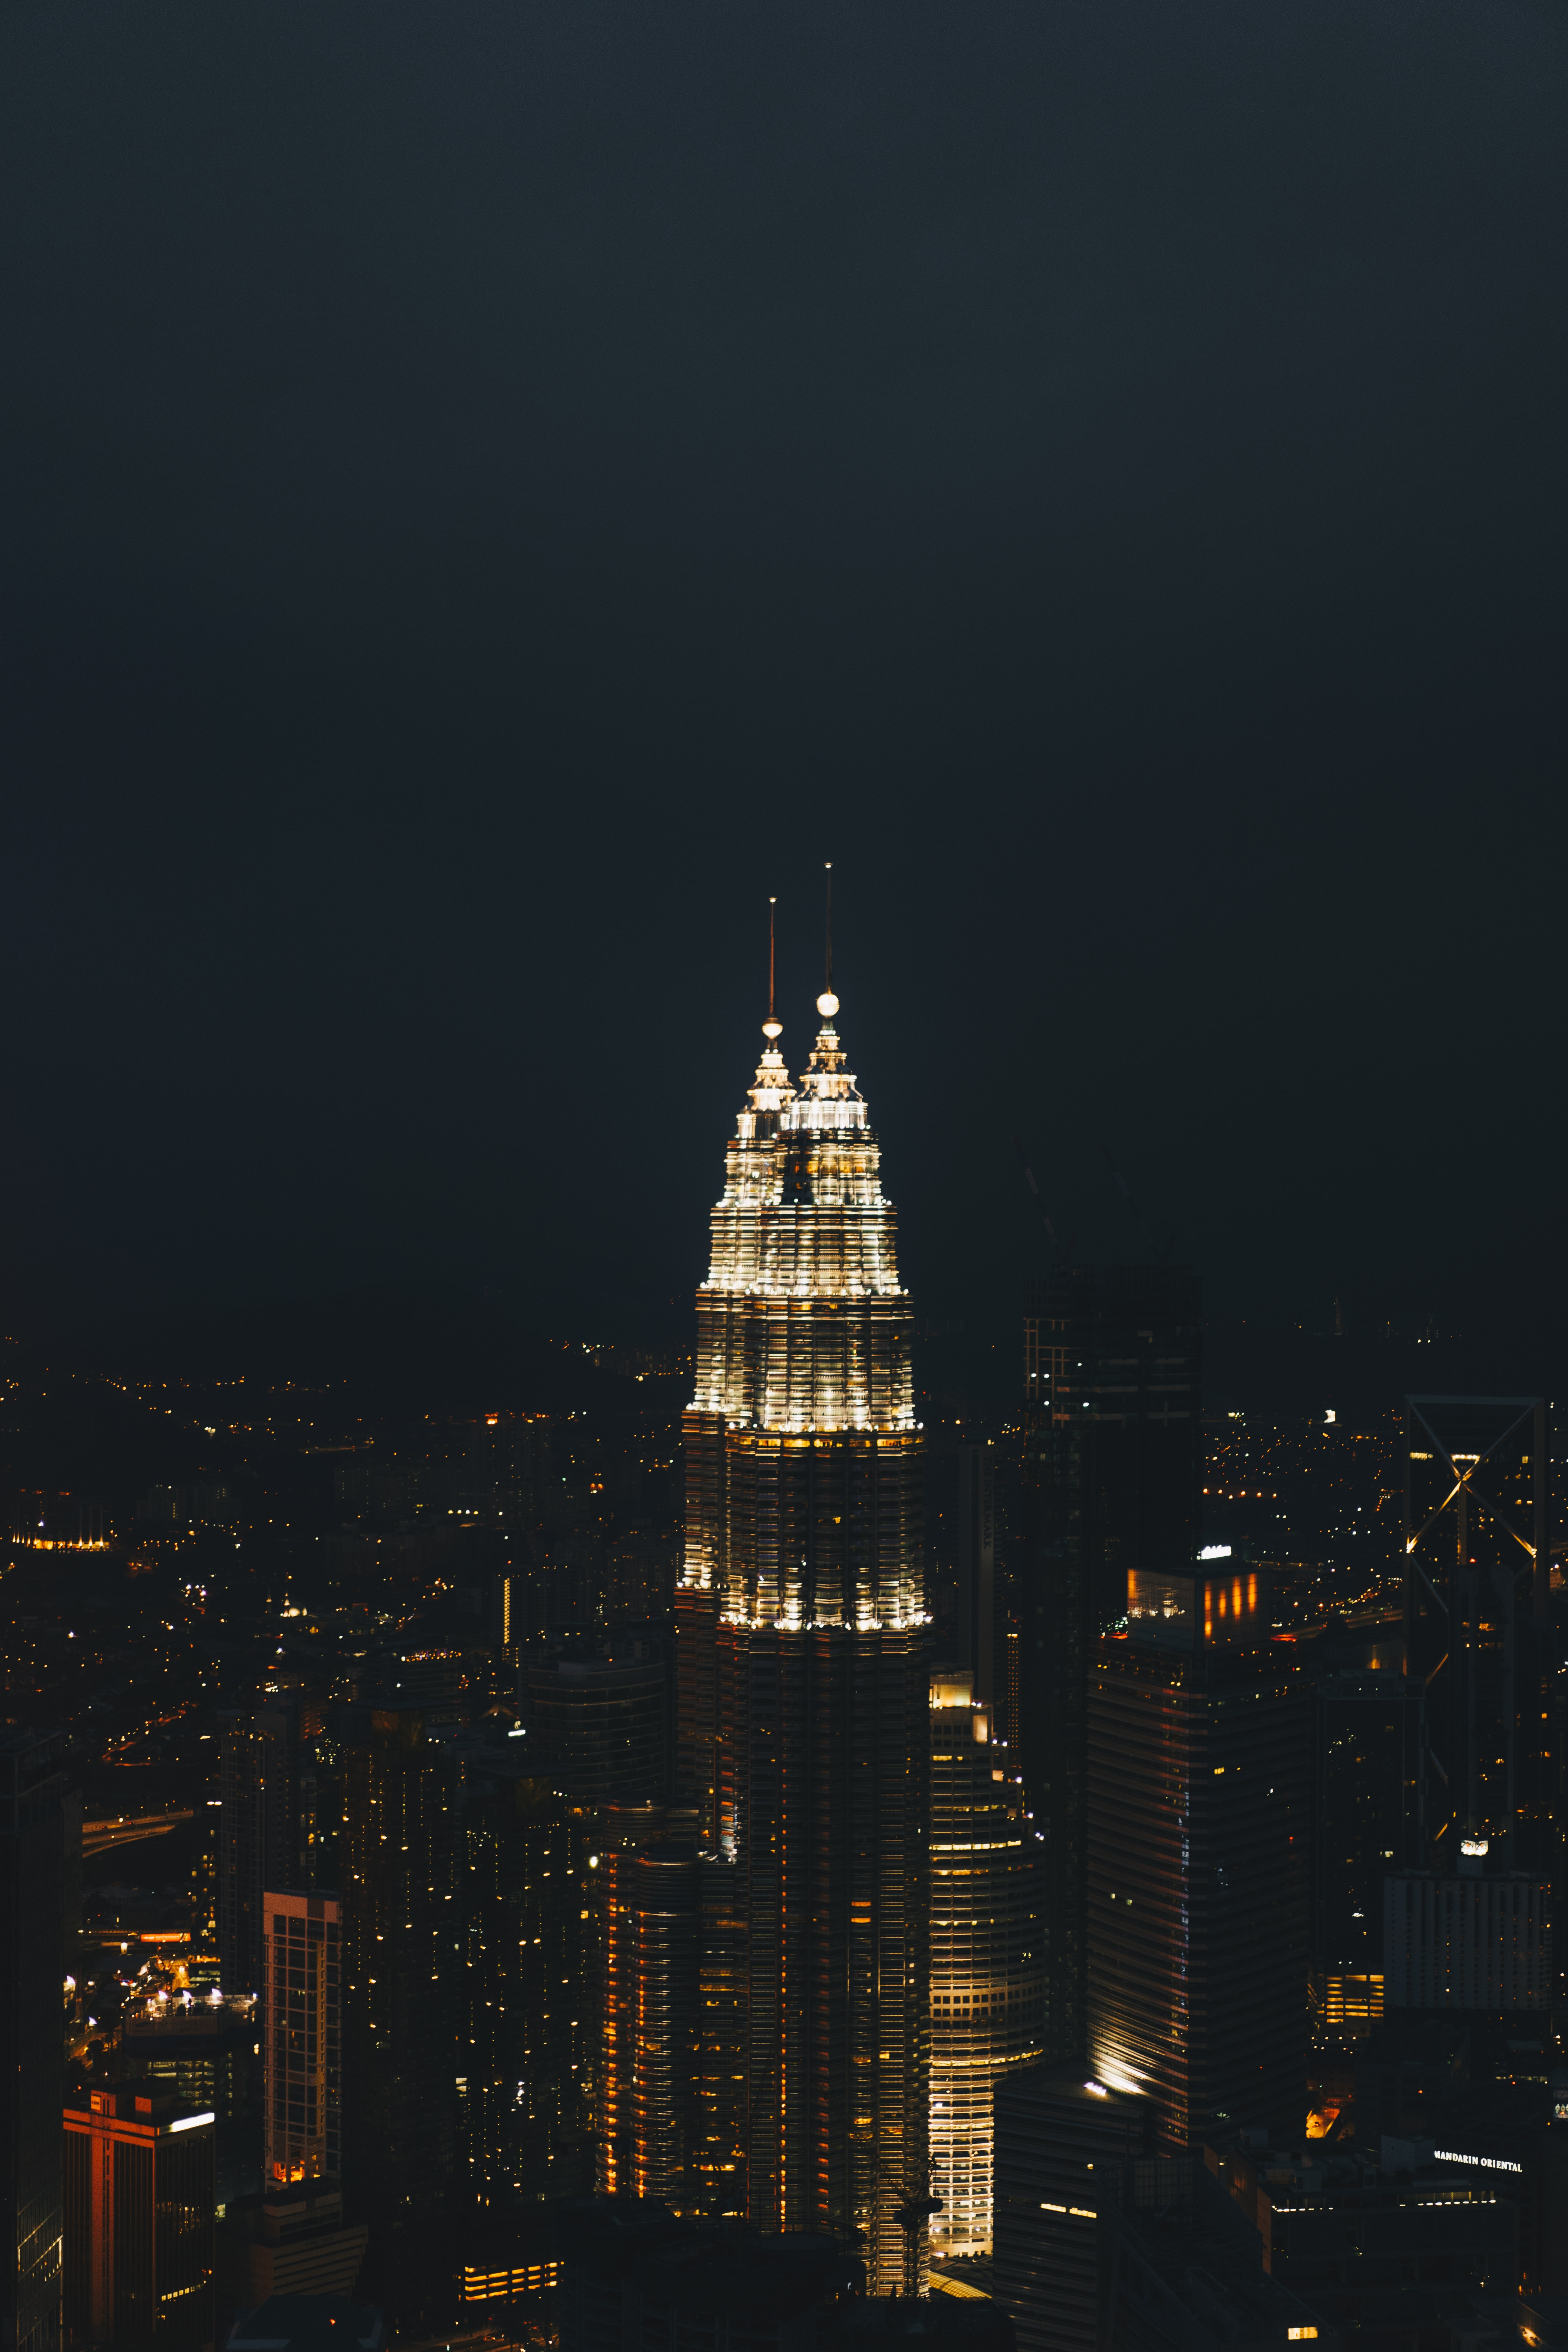 photo of tower during nighttime